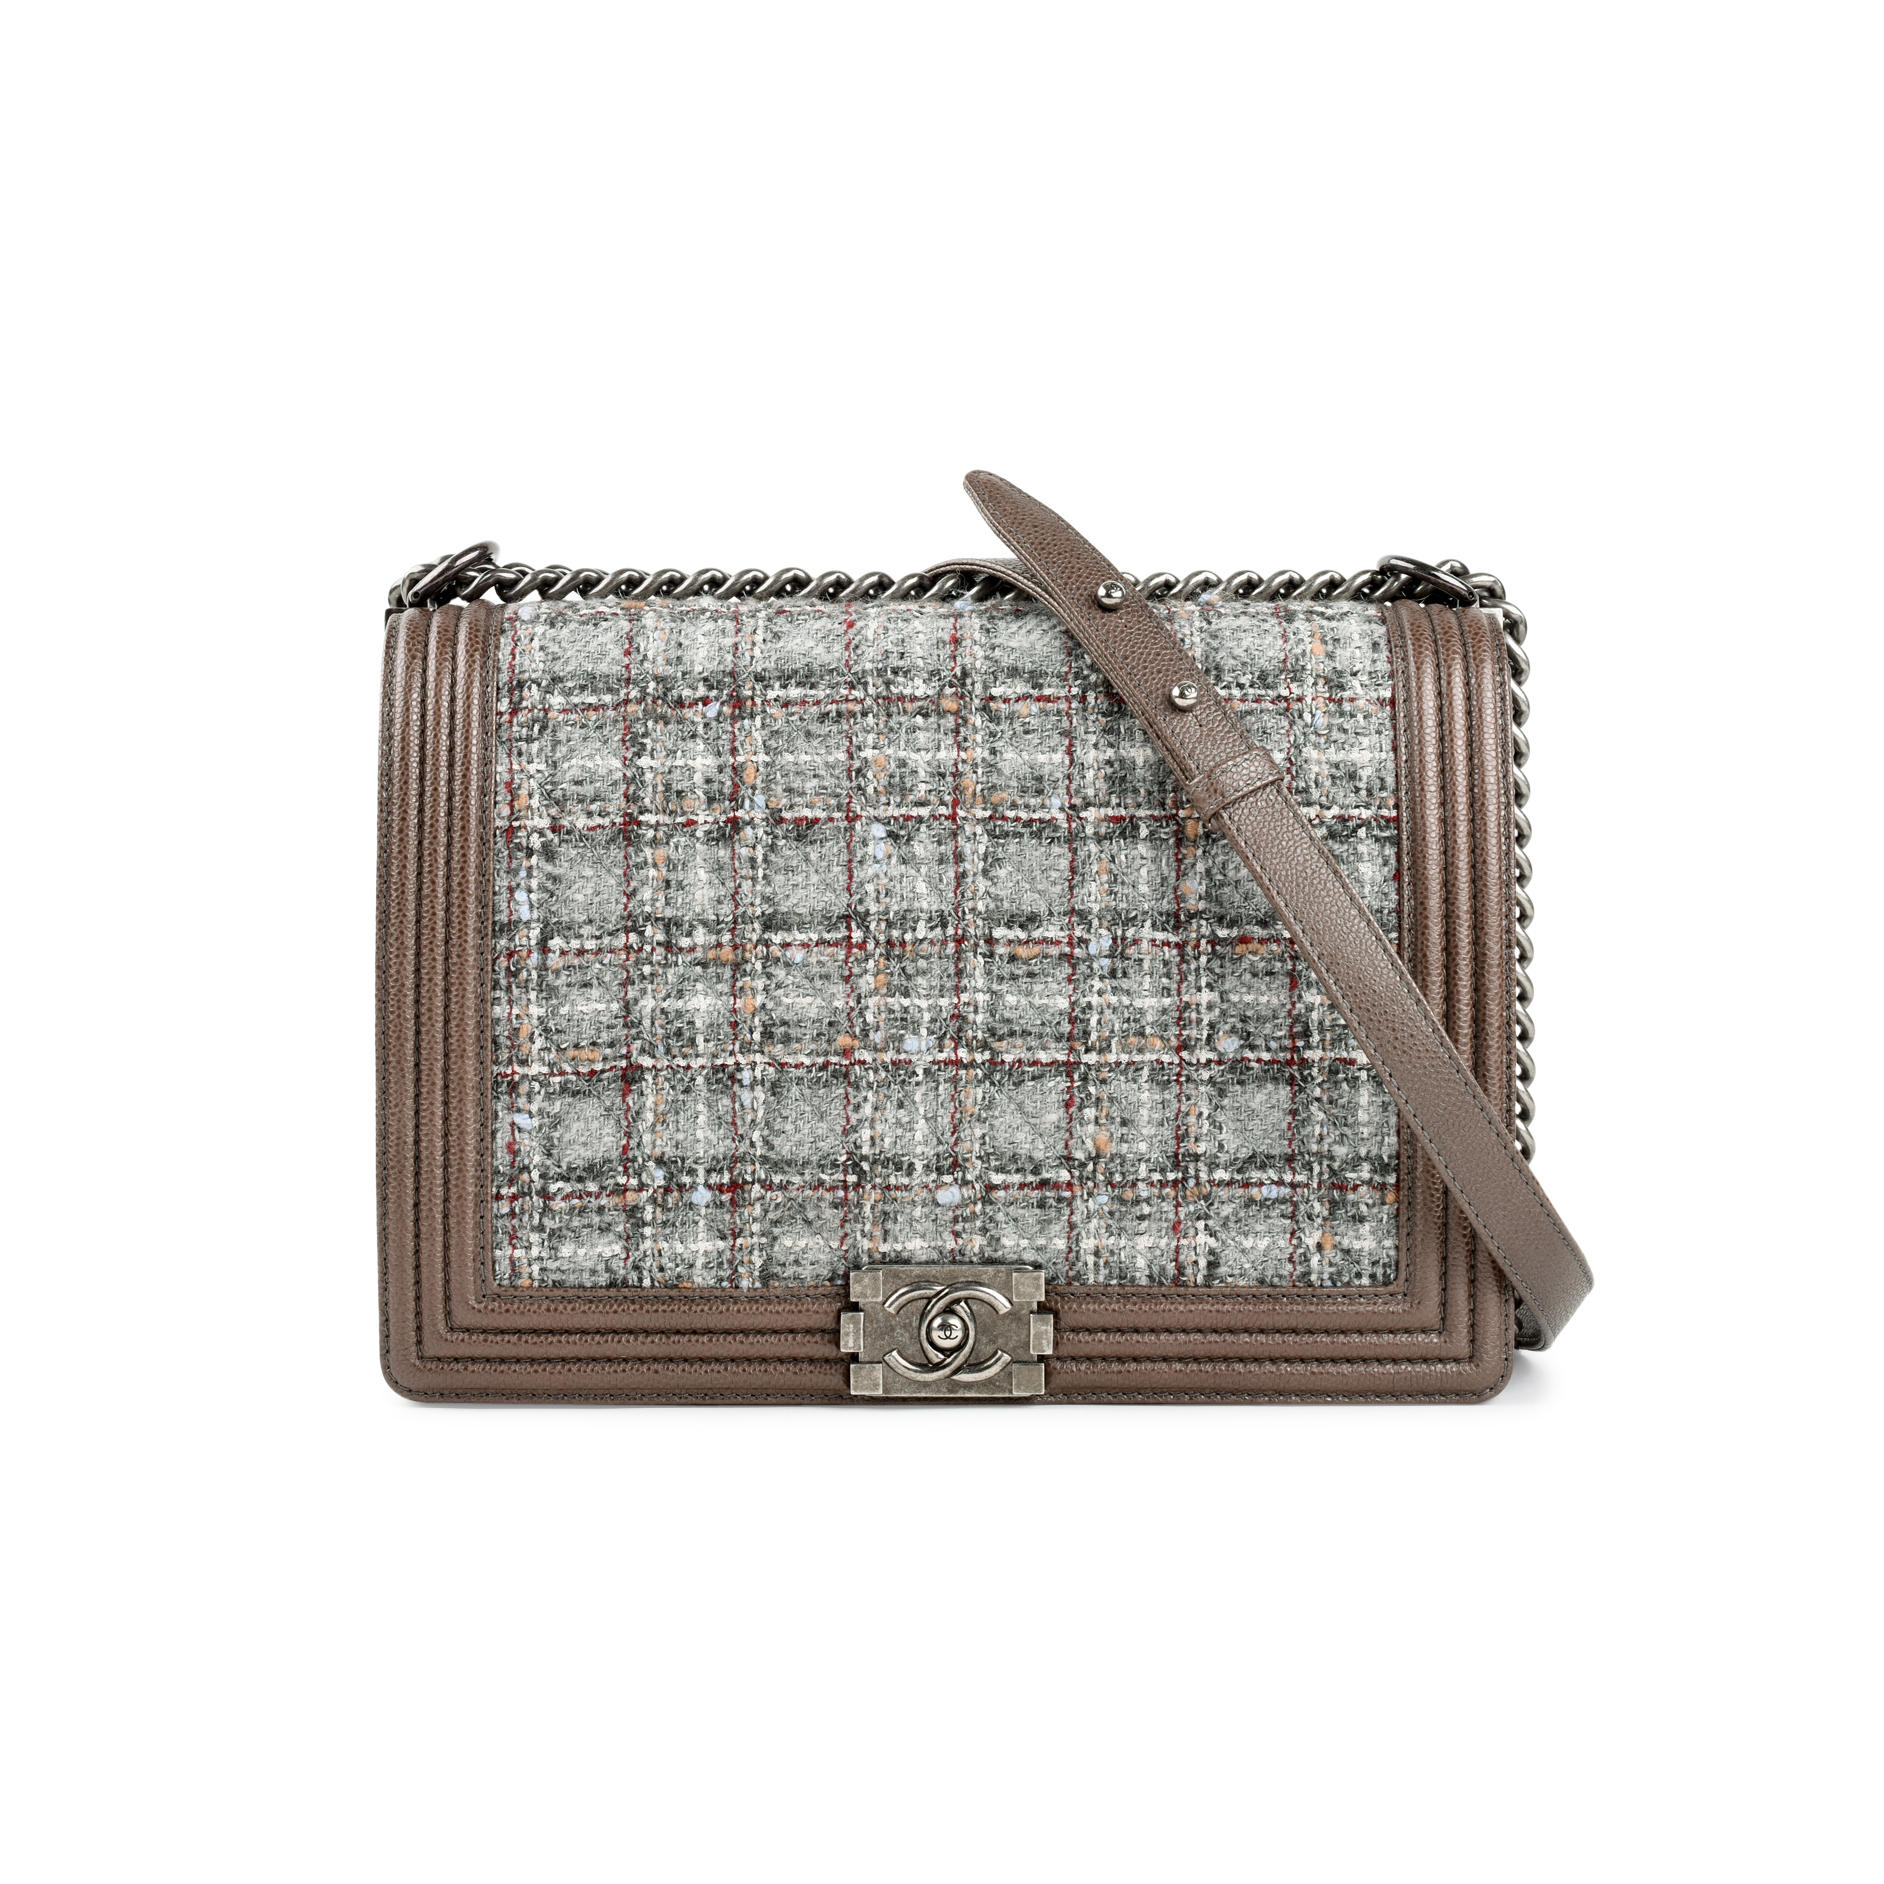 1c9490d2b02a Authentic Second Hand Chanel Limited Edition Tweed Large Boy Bag  (PSS-200-01340) | THE FIFTH COLLECTION